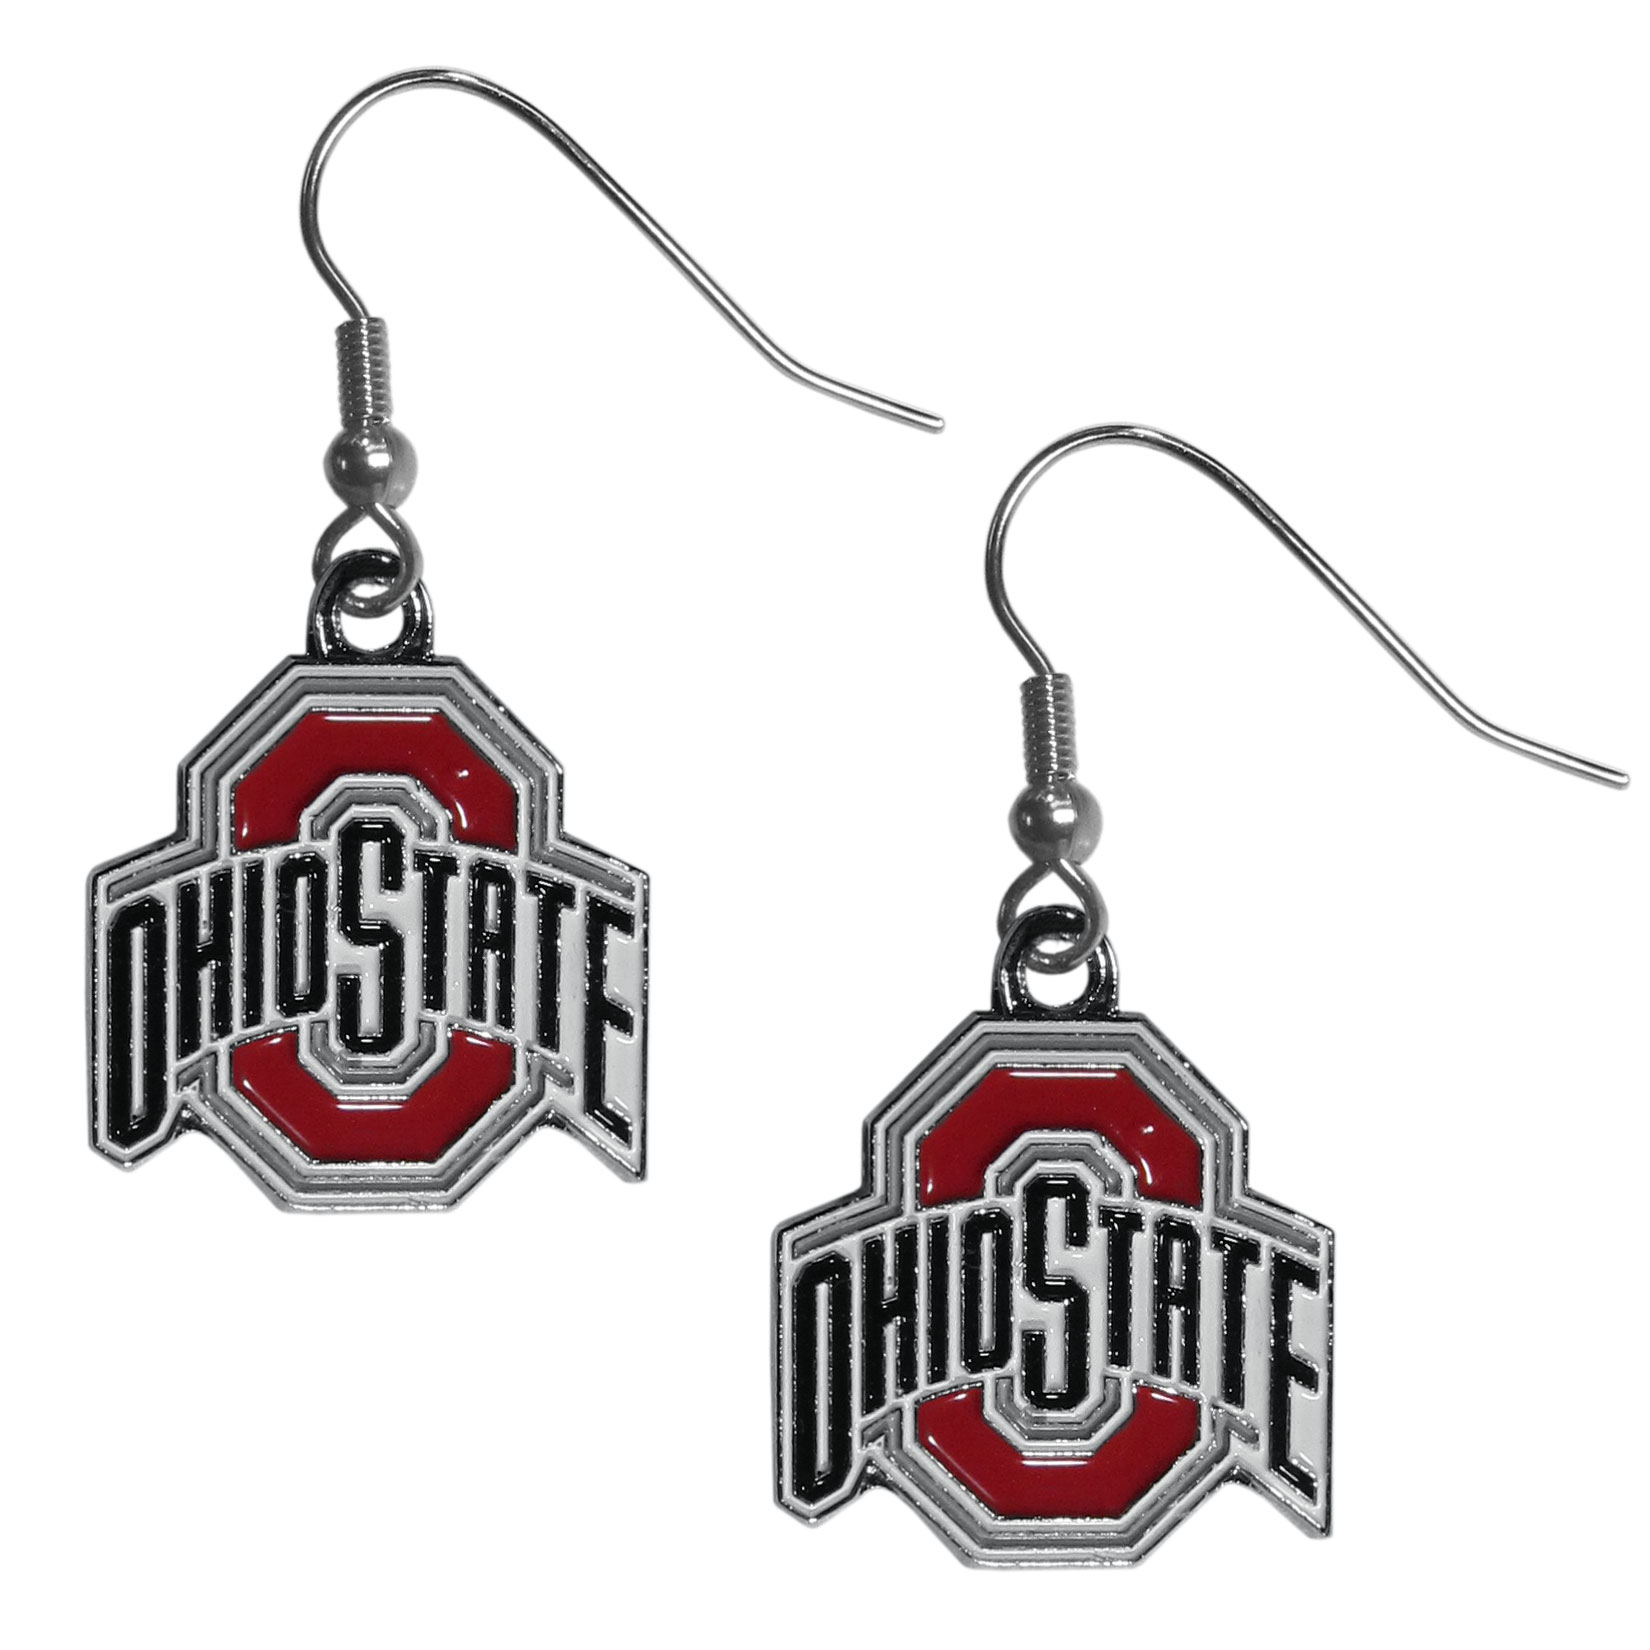 Ohio St. Buckeyes Chrome Dangle Earrings - Our officially licensed chrome dangle earrings have fully cast Ohio St. Buckeyes charms with exceptional detail and a hand enameled finish. The earrings have a high polish nickel free chrome finish and hypoallergenic fishhook posts.